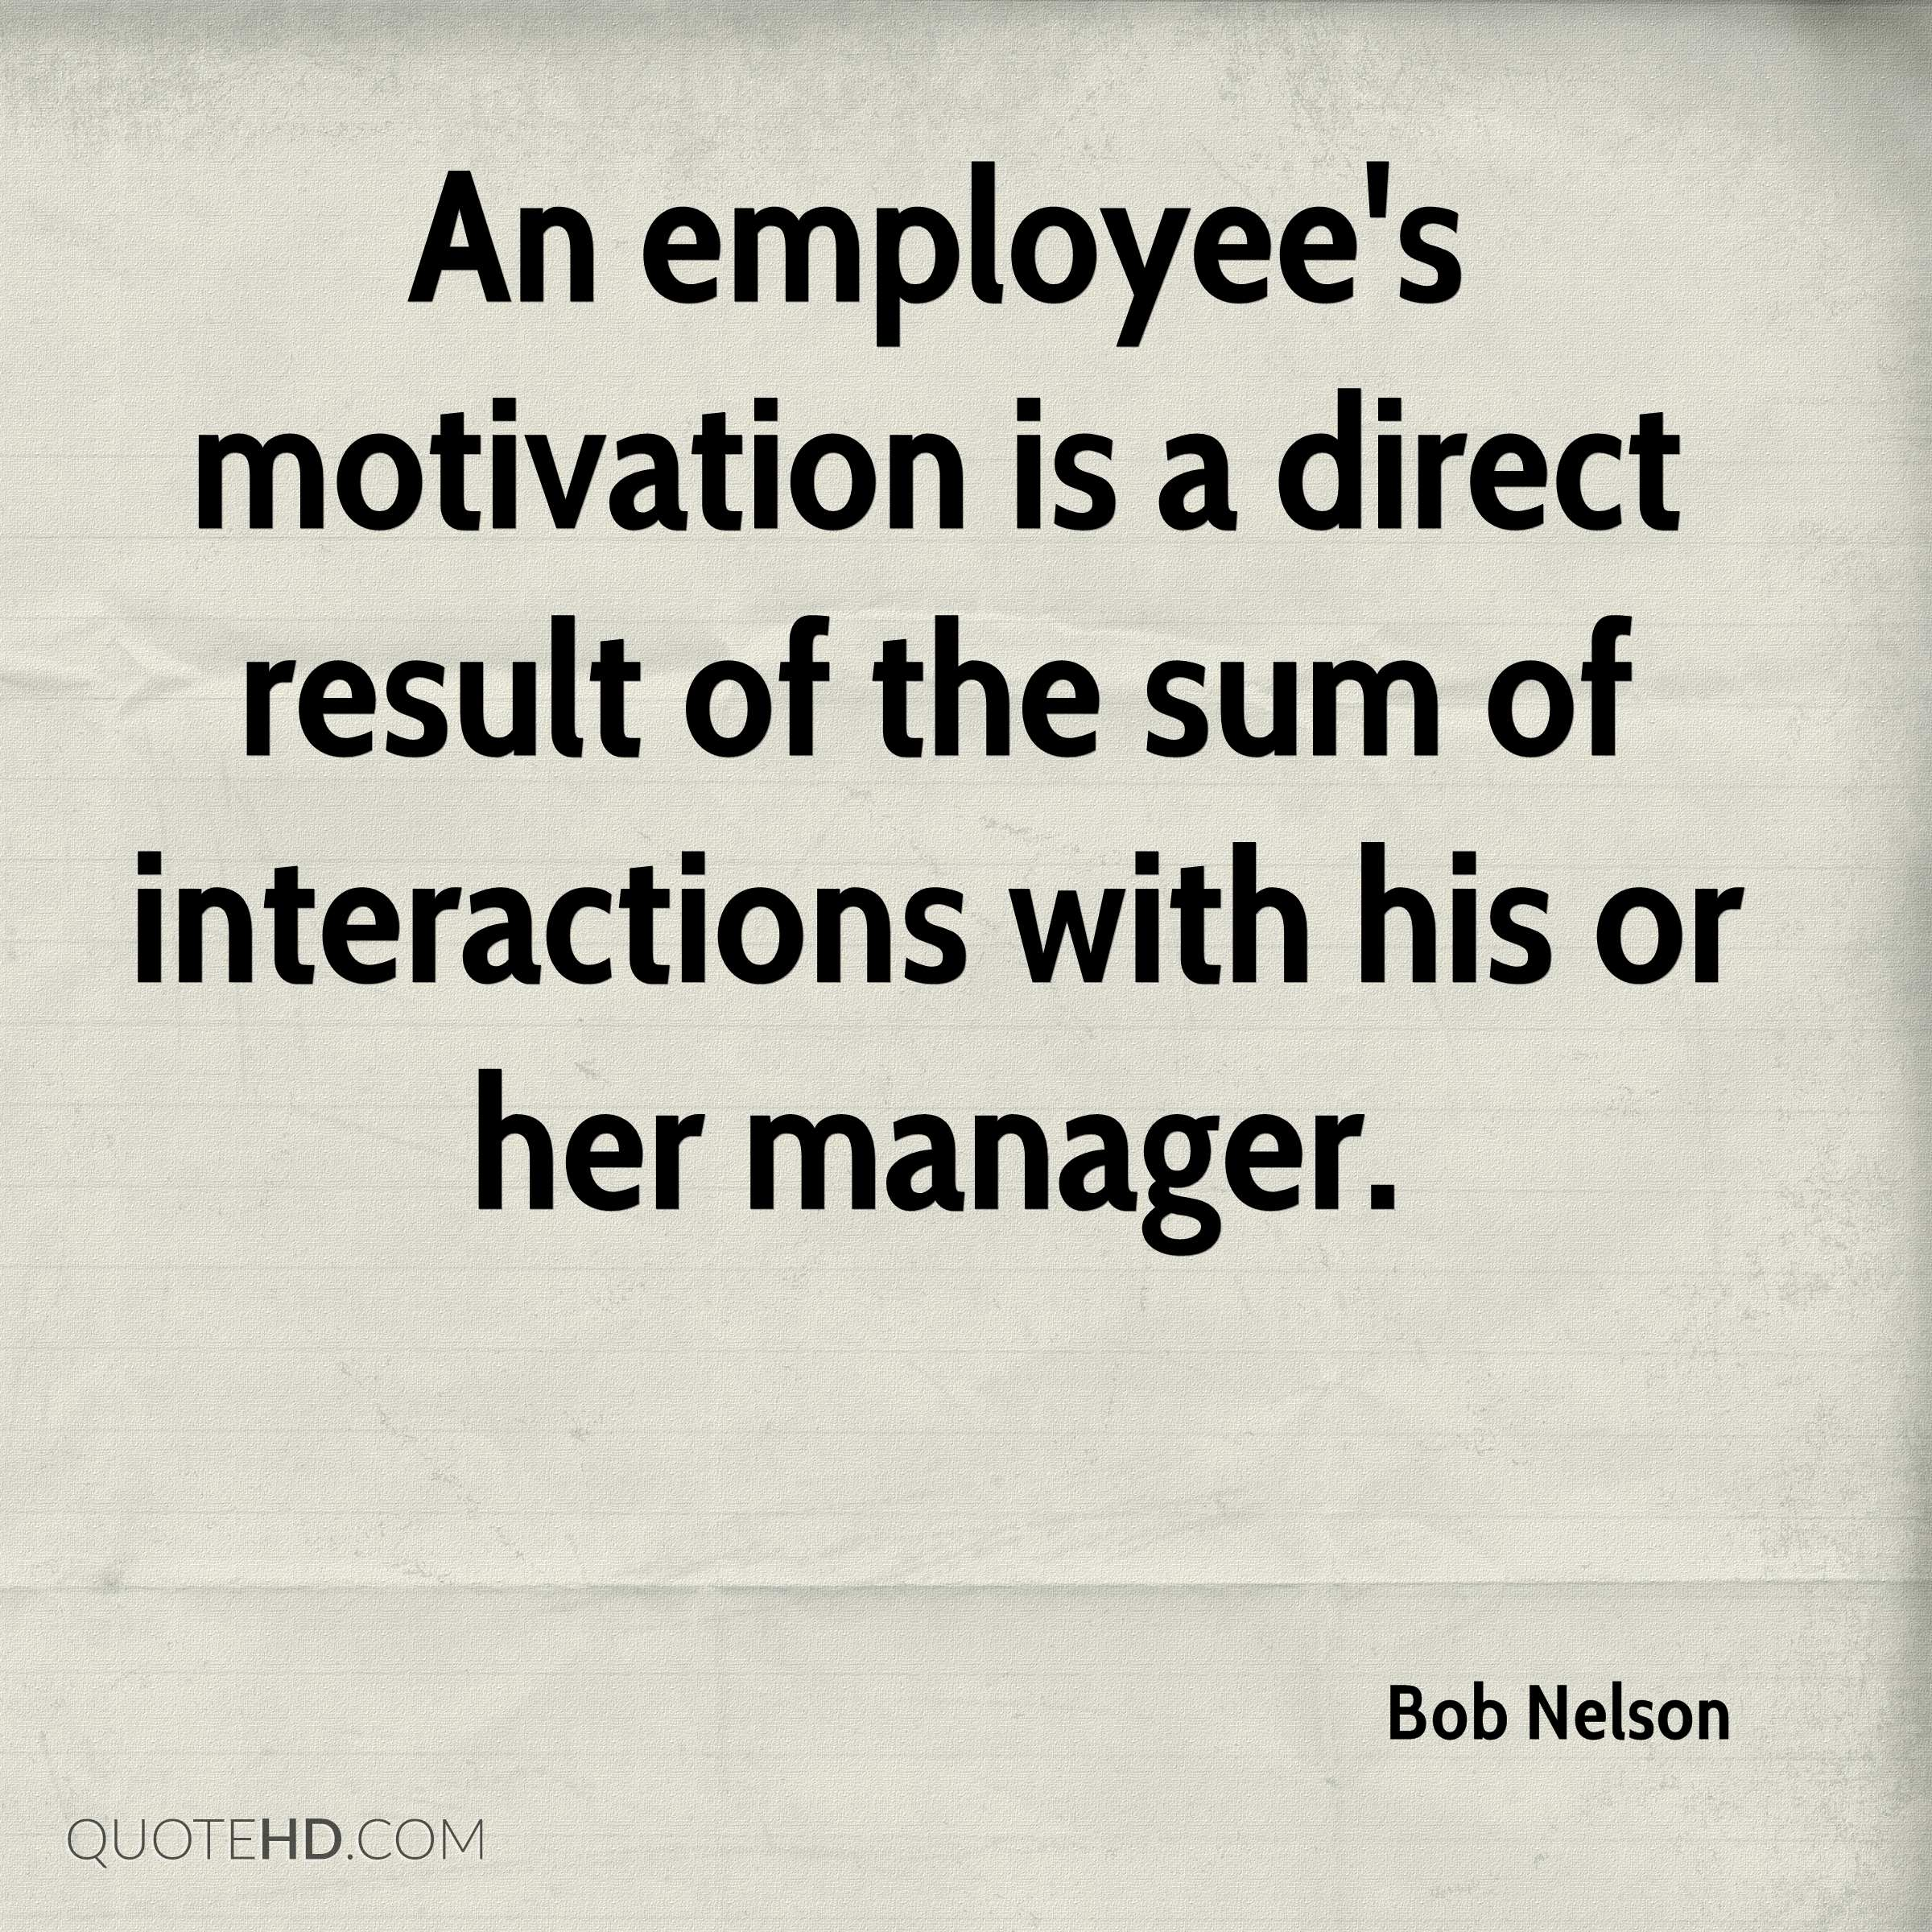 Motivational Quotes For Employees: Employee Motivation Quotes